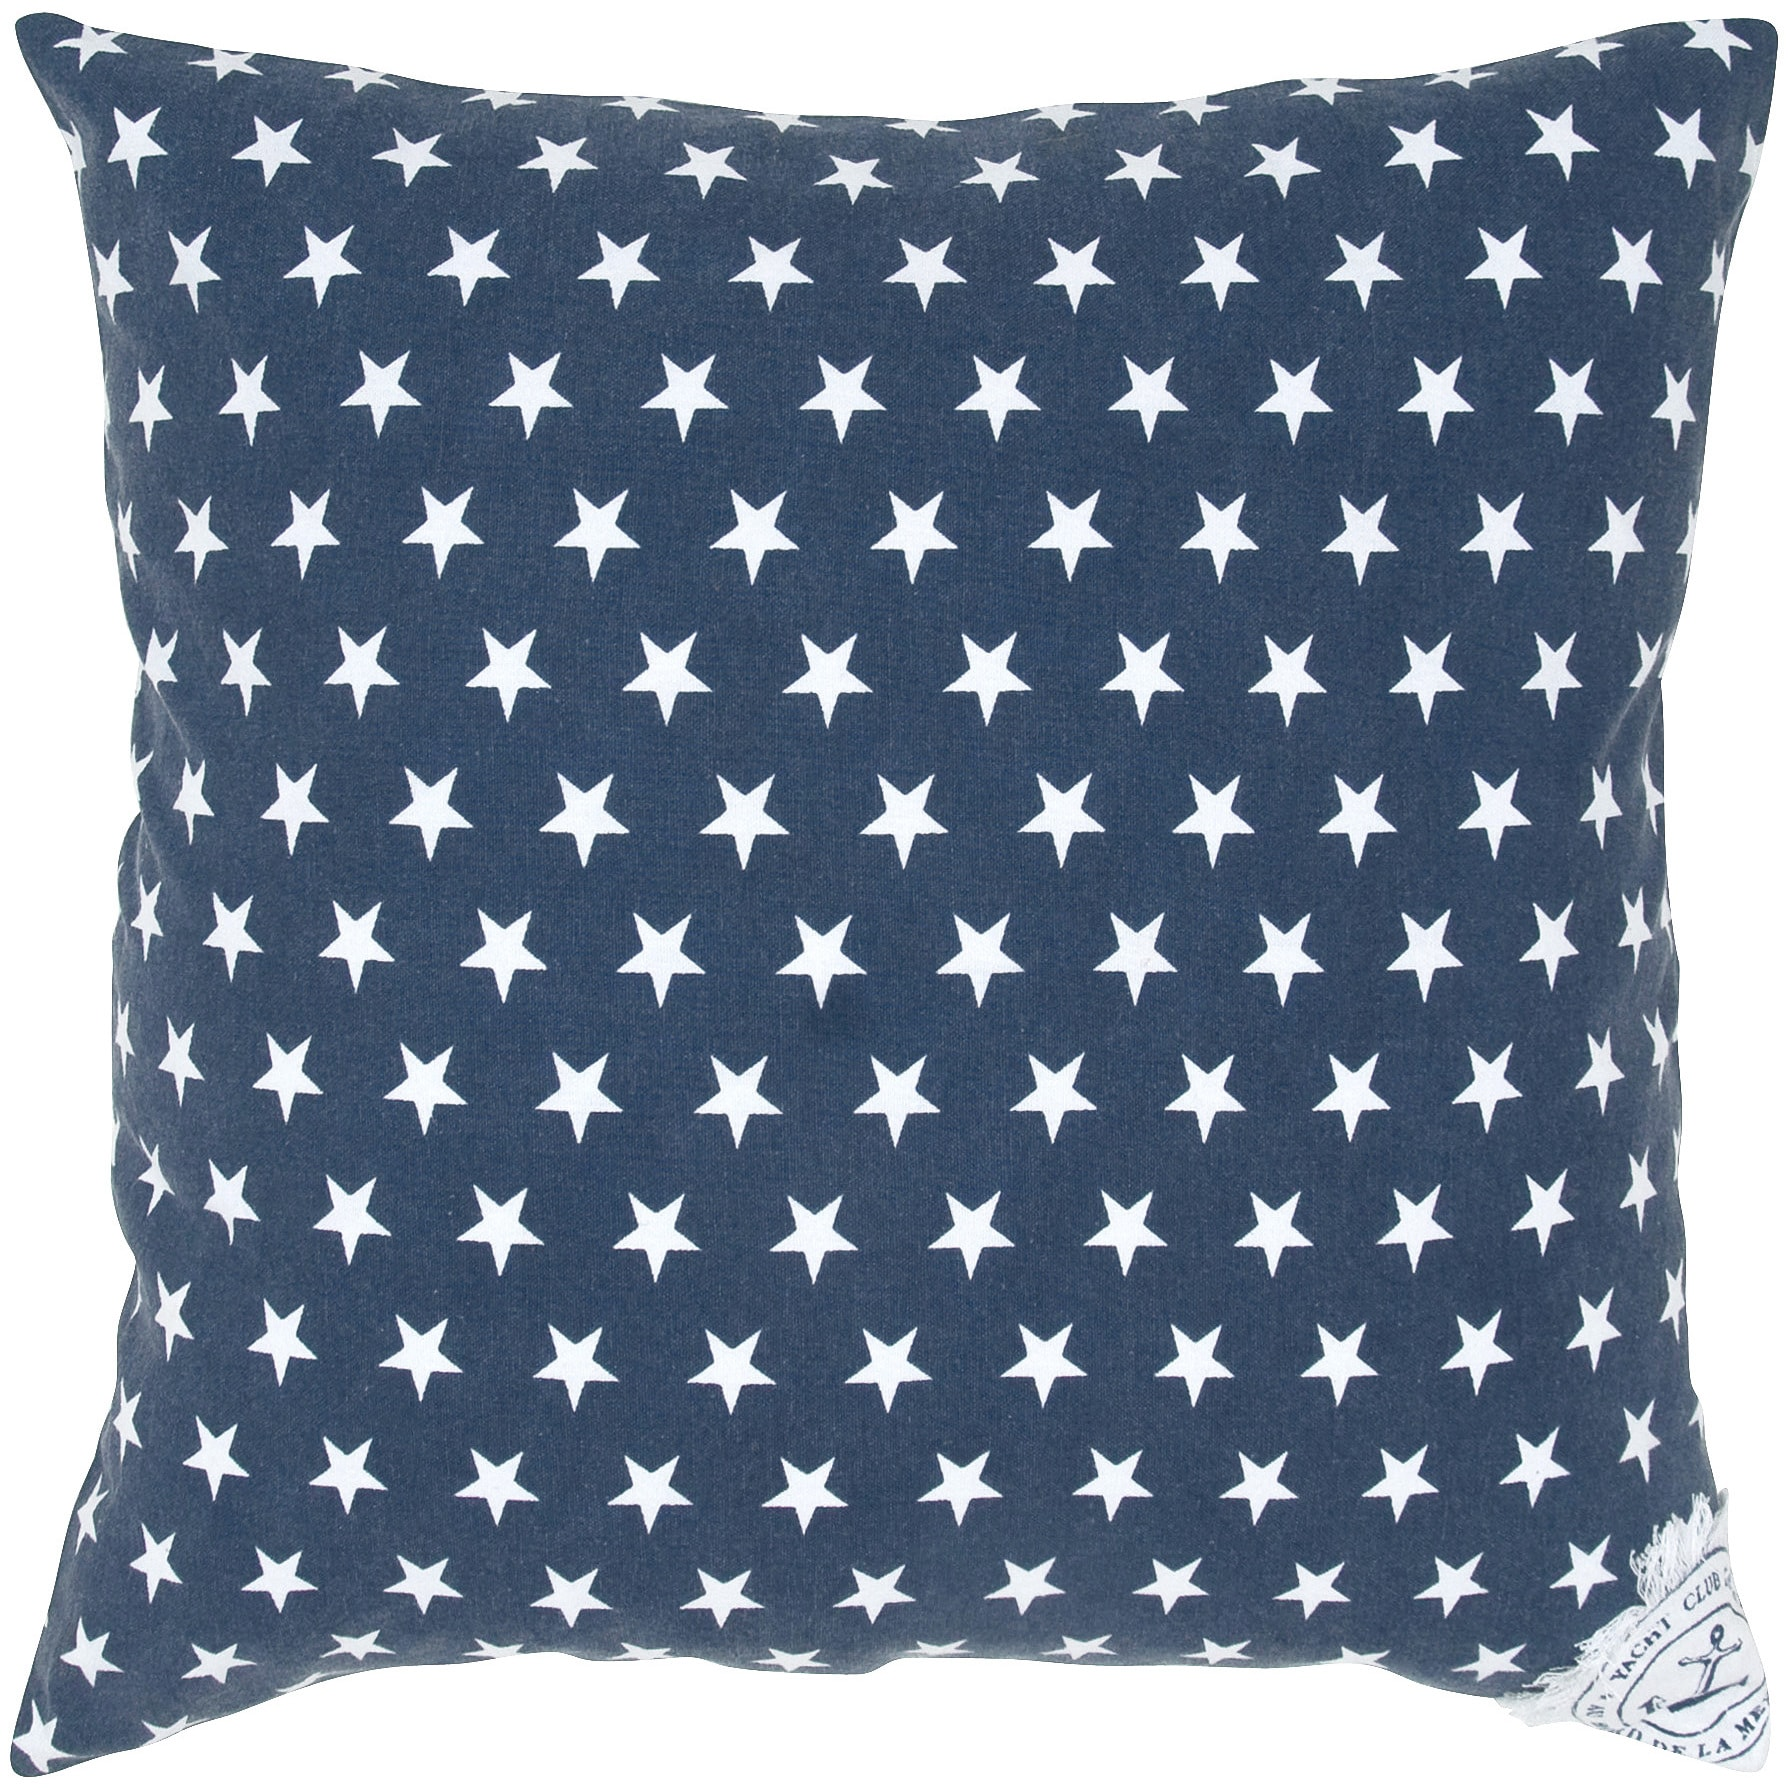 Navy Blue Star Decorative Pillow - Free Shipping On Orders Over ...